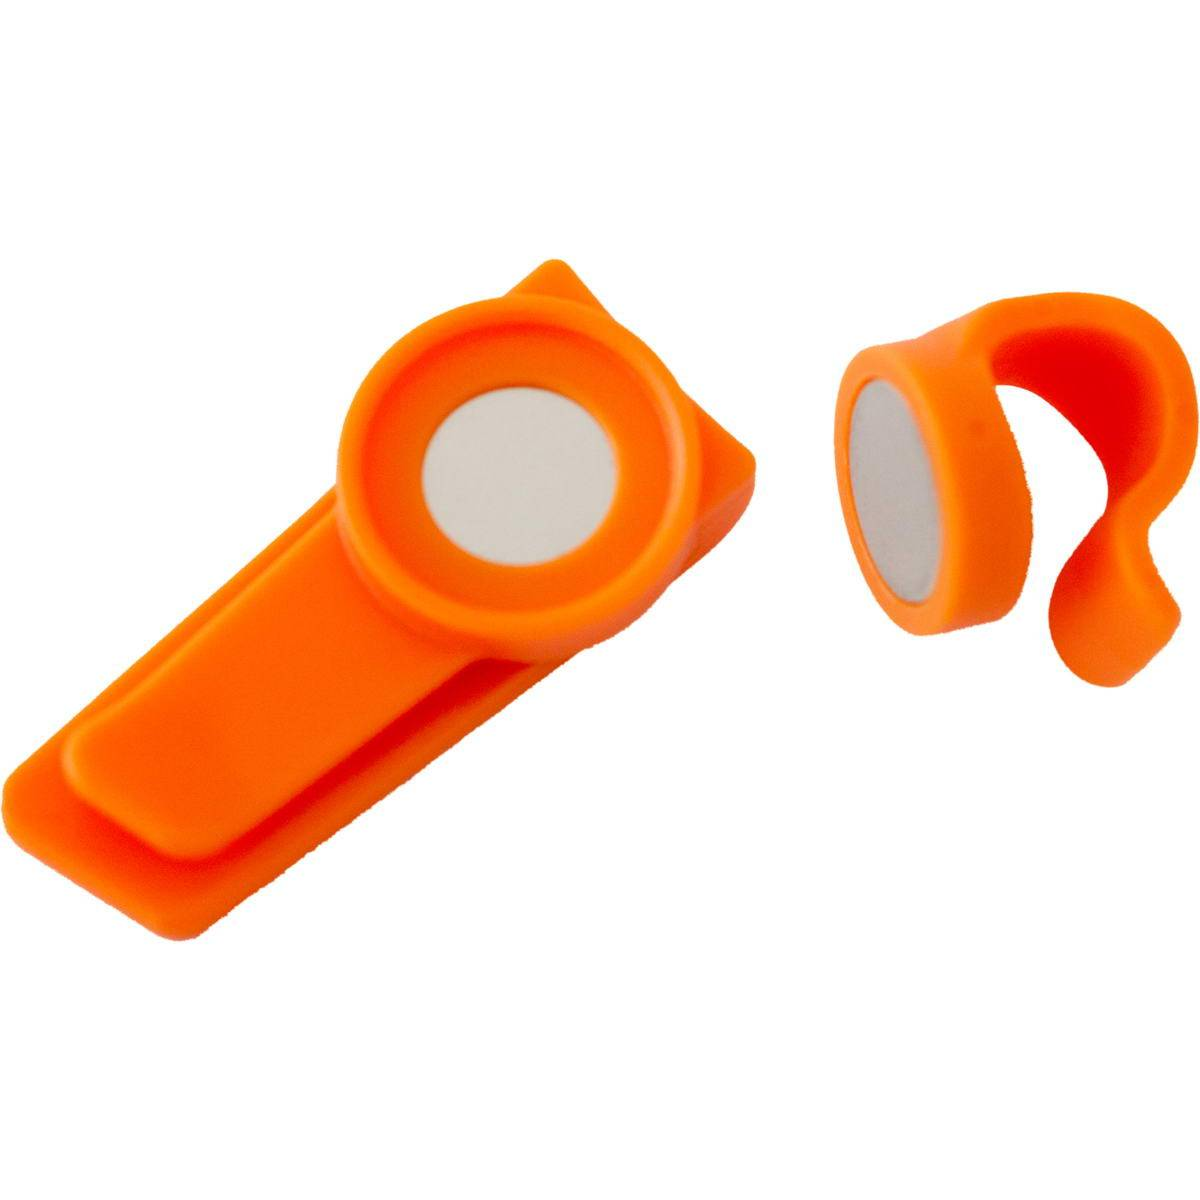 Source Magnetic Clip - Magnethalterung orange - Bild 3